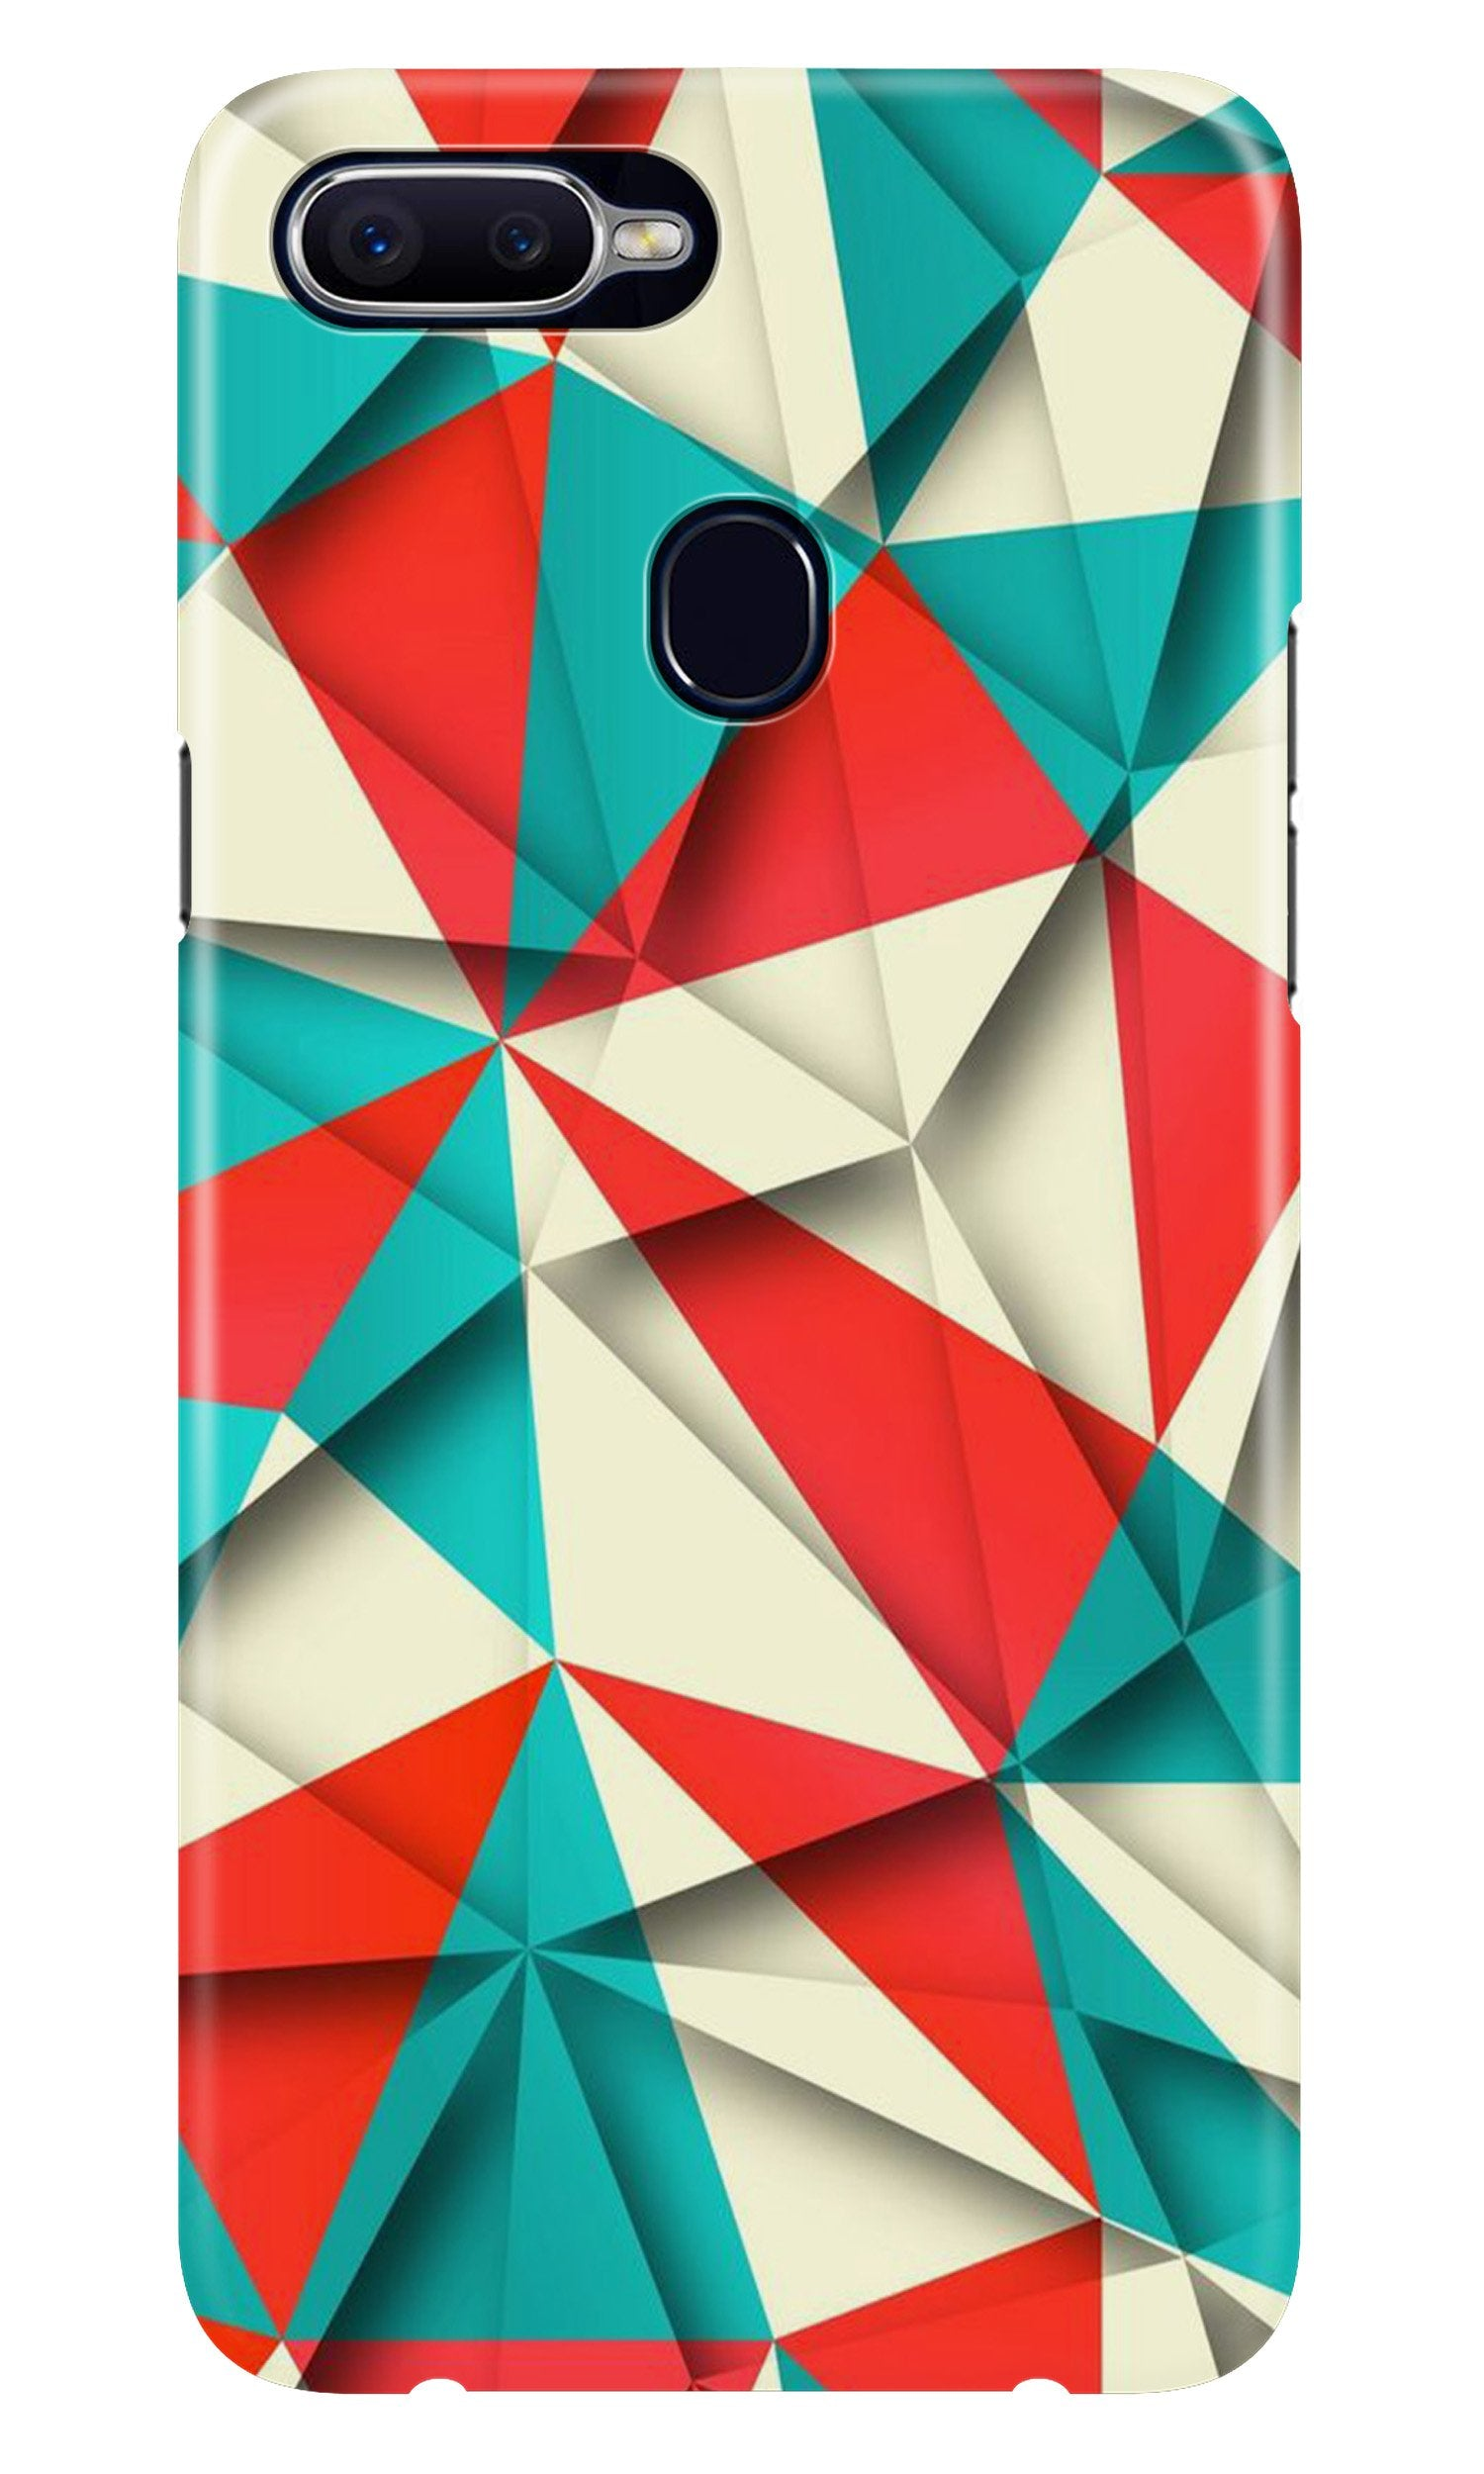 Modern Art Case for Vivo Y83 (Design No. 271)